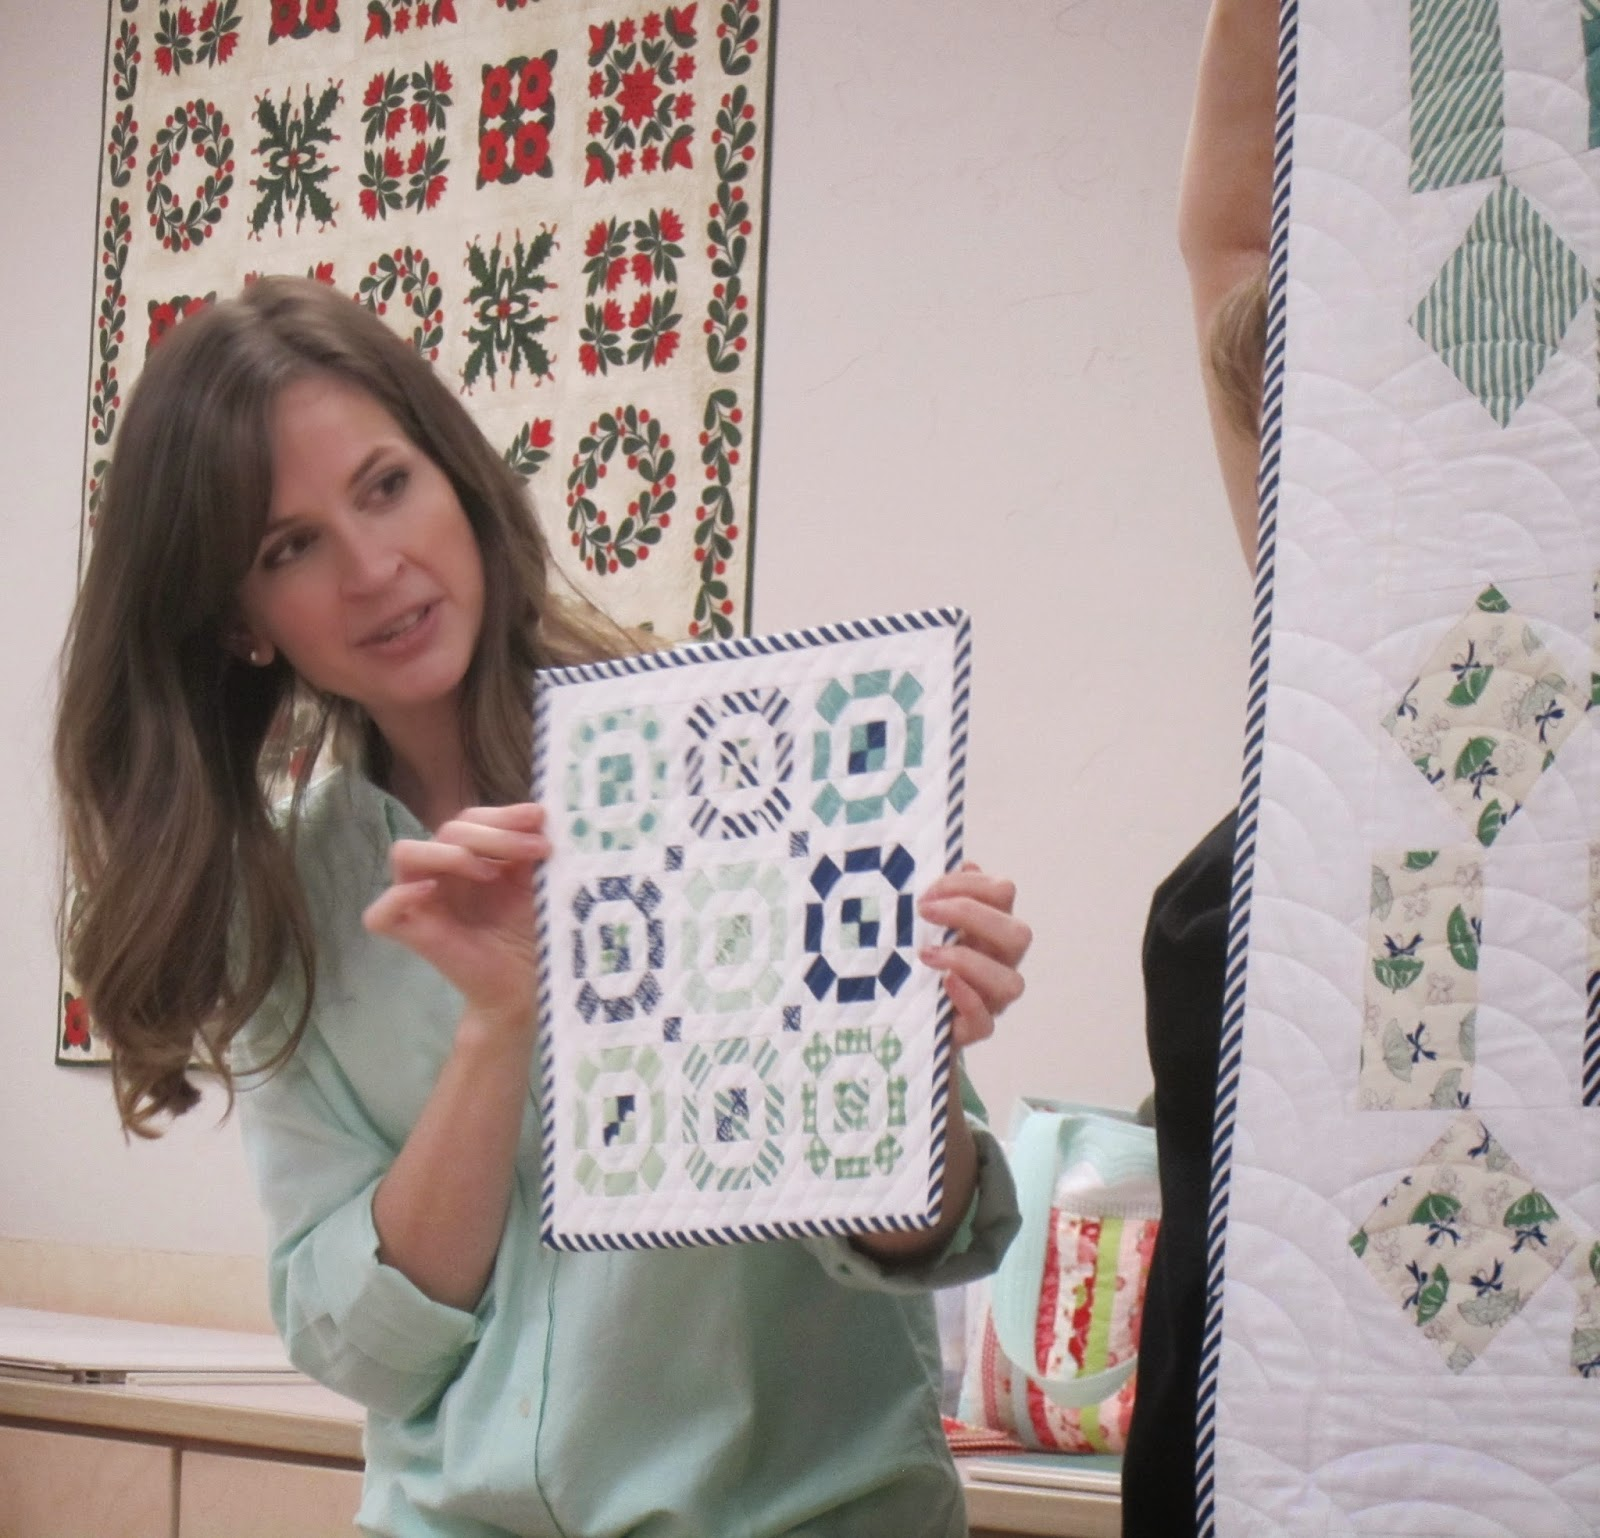 camille roskelley's mini puddle jumping quilt